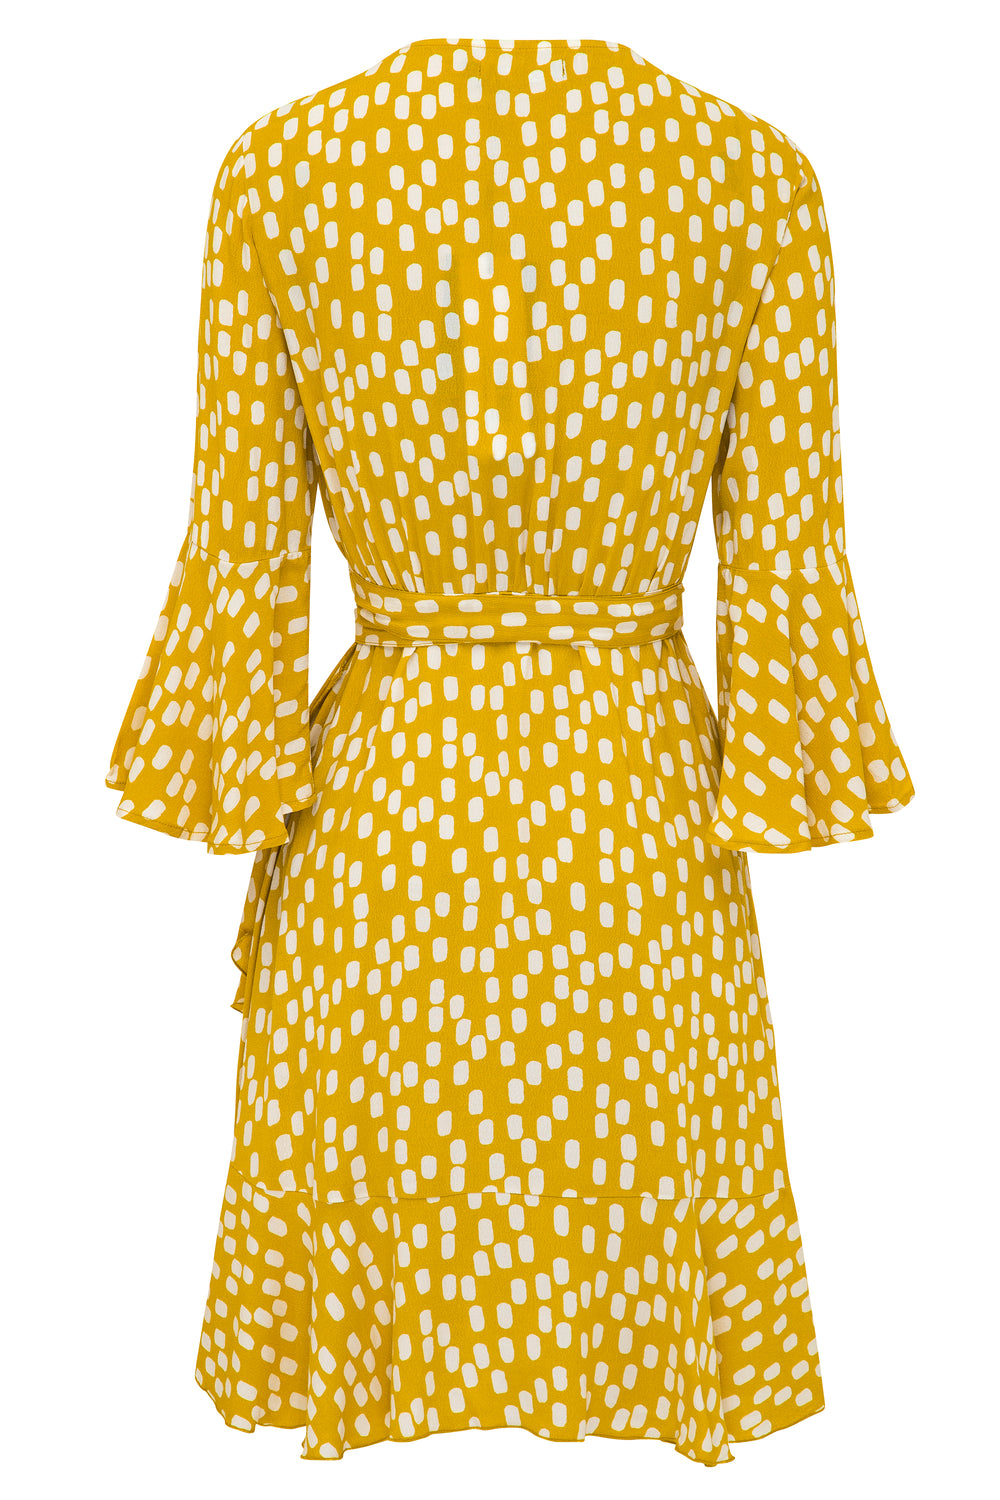 Colette Dress In Chartreuse